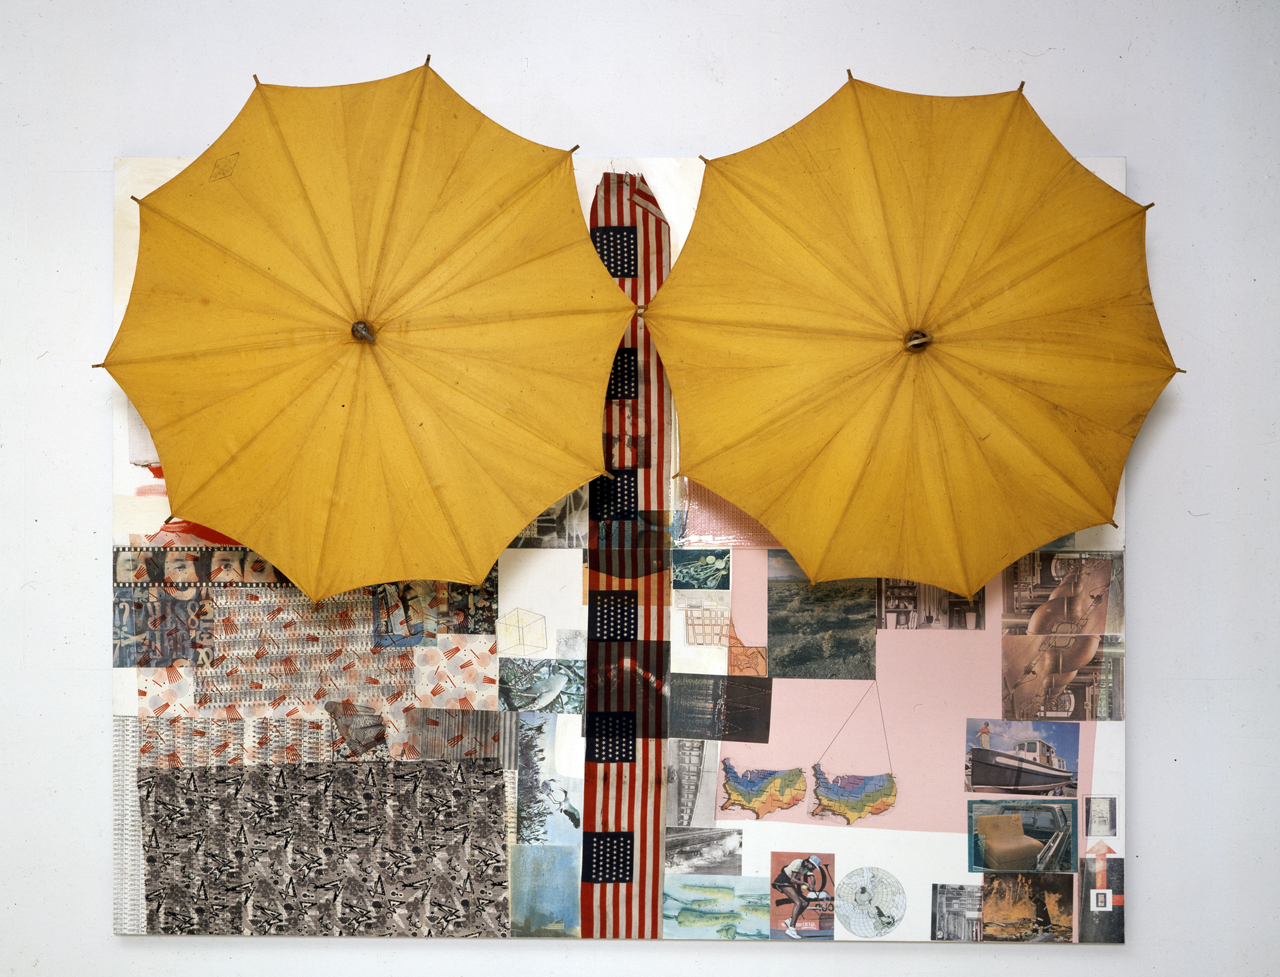 Robert Rauschenberg, Untitled (Spread), 1983, Solvent transfer with umbrellas